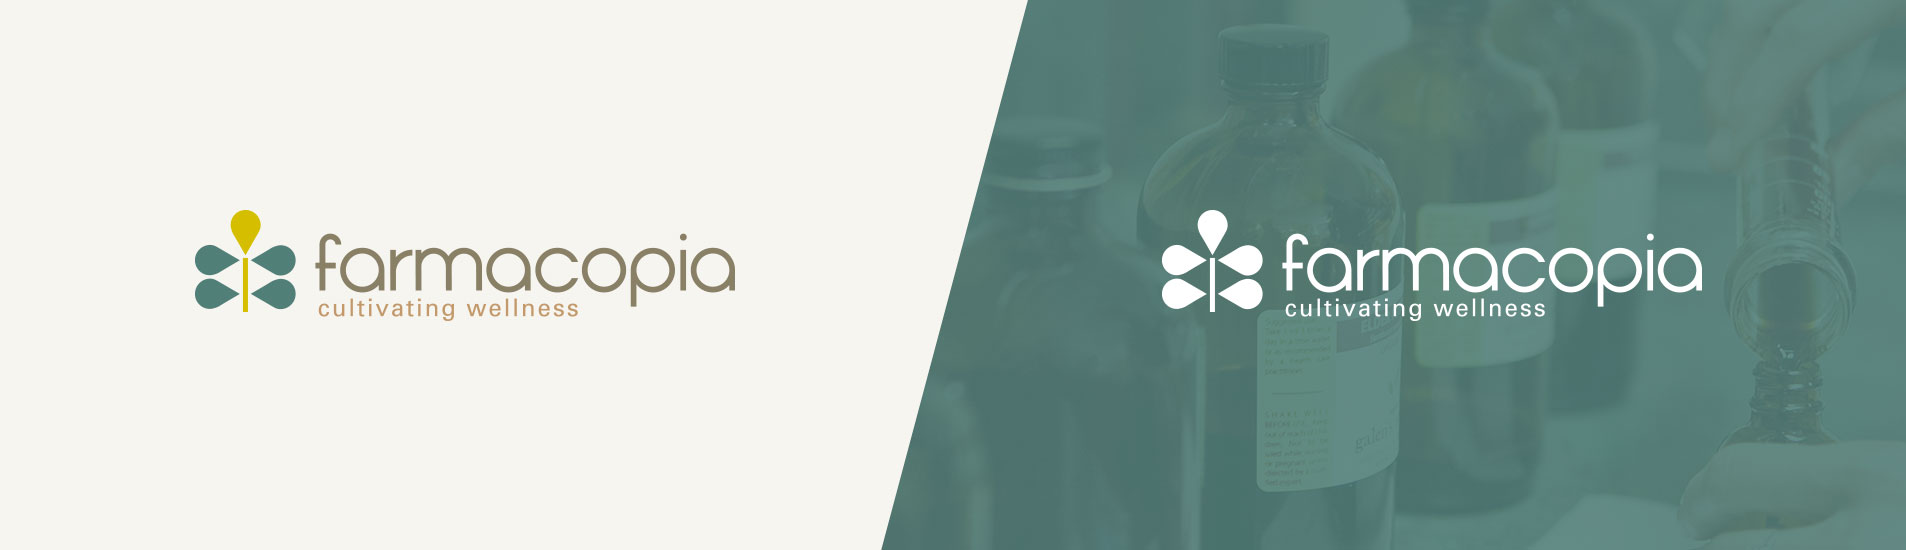 farmacopia logo design